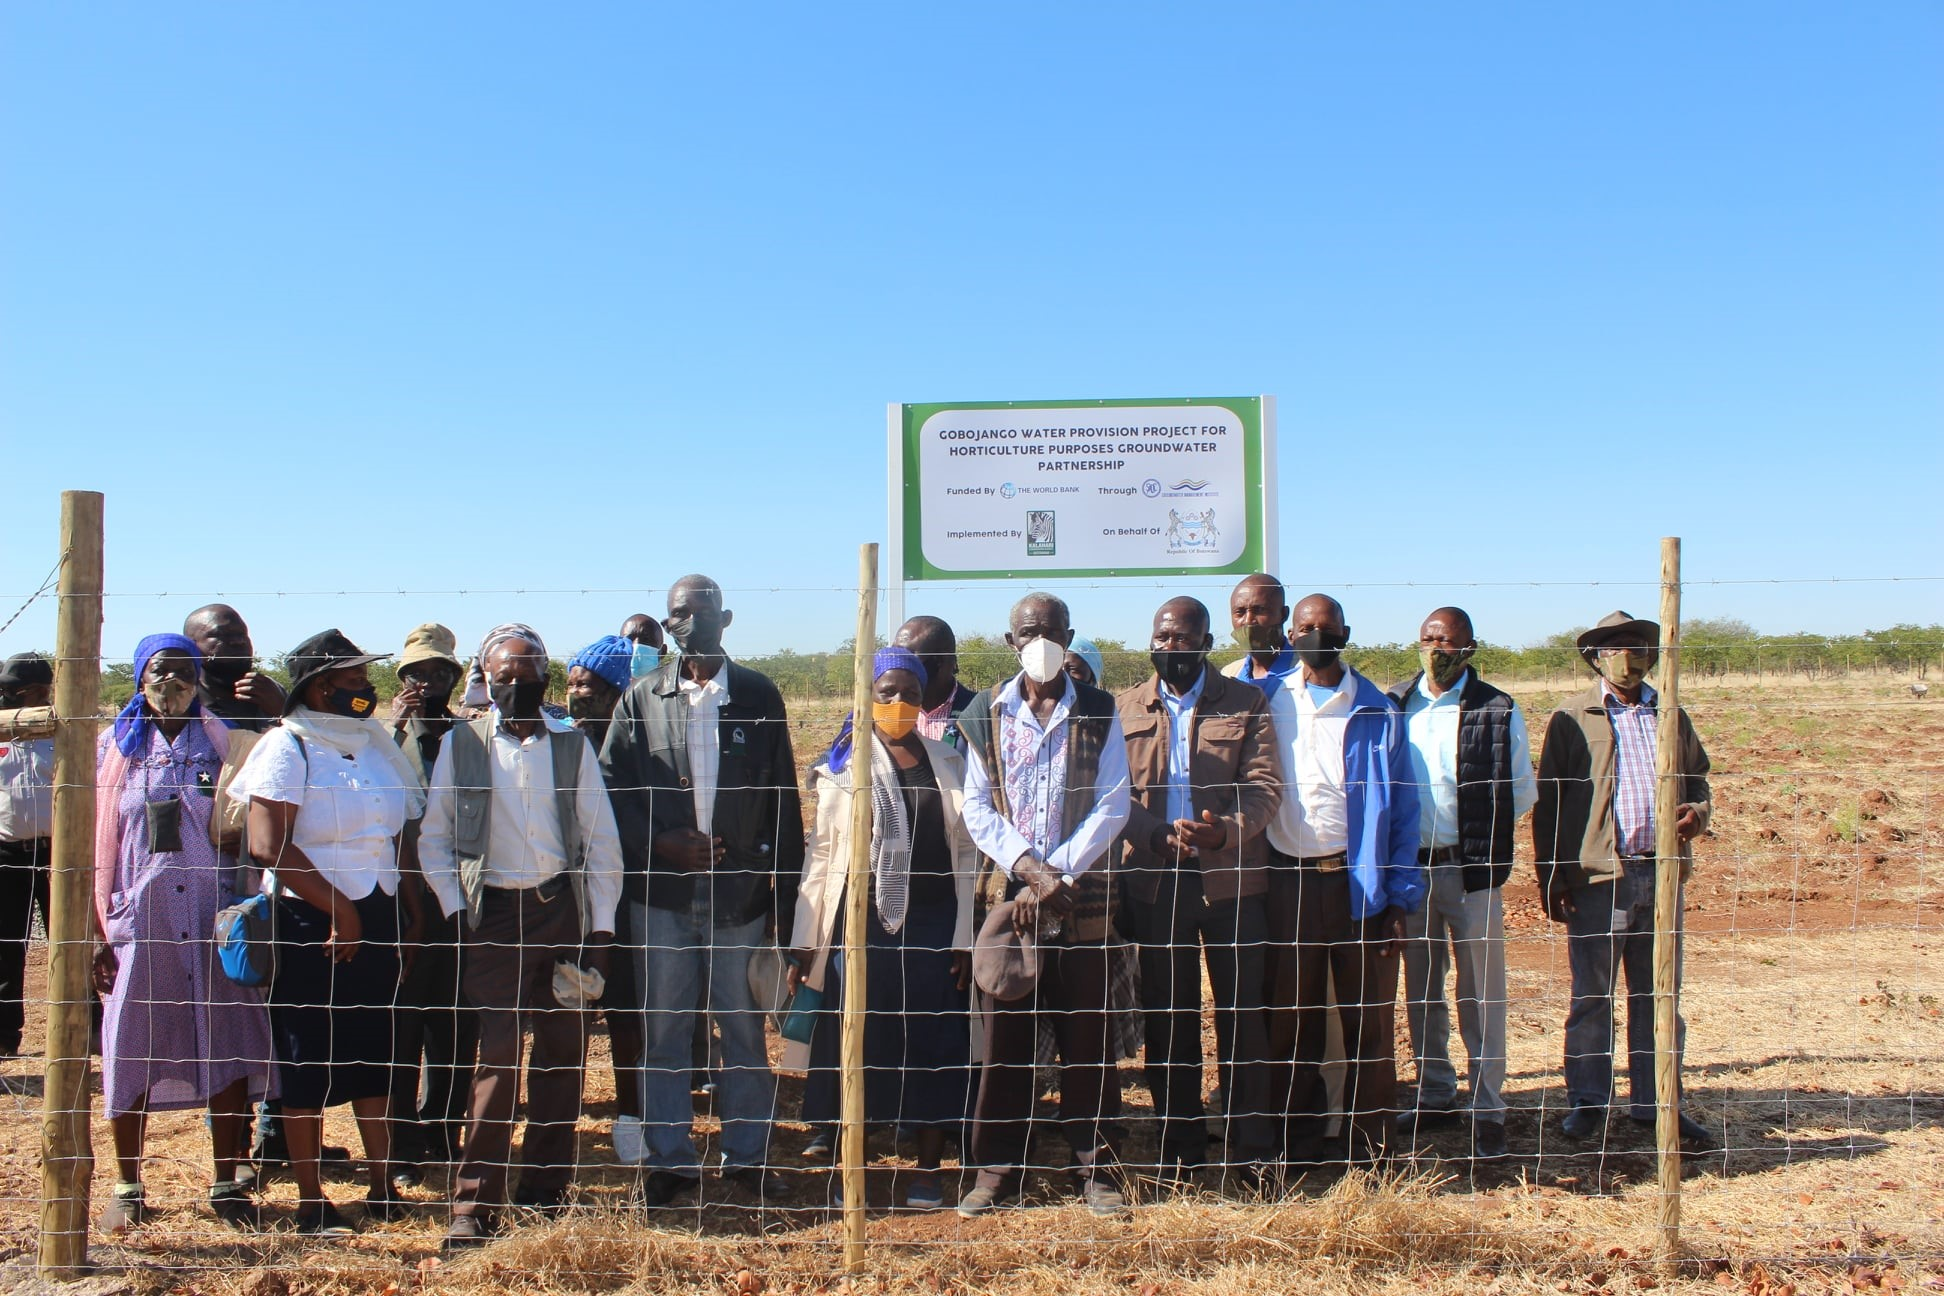 Figure 2: Some of the members of the Gobojango community who graced the project commissioning event.